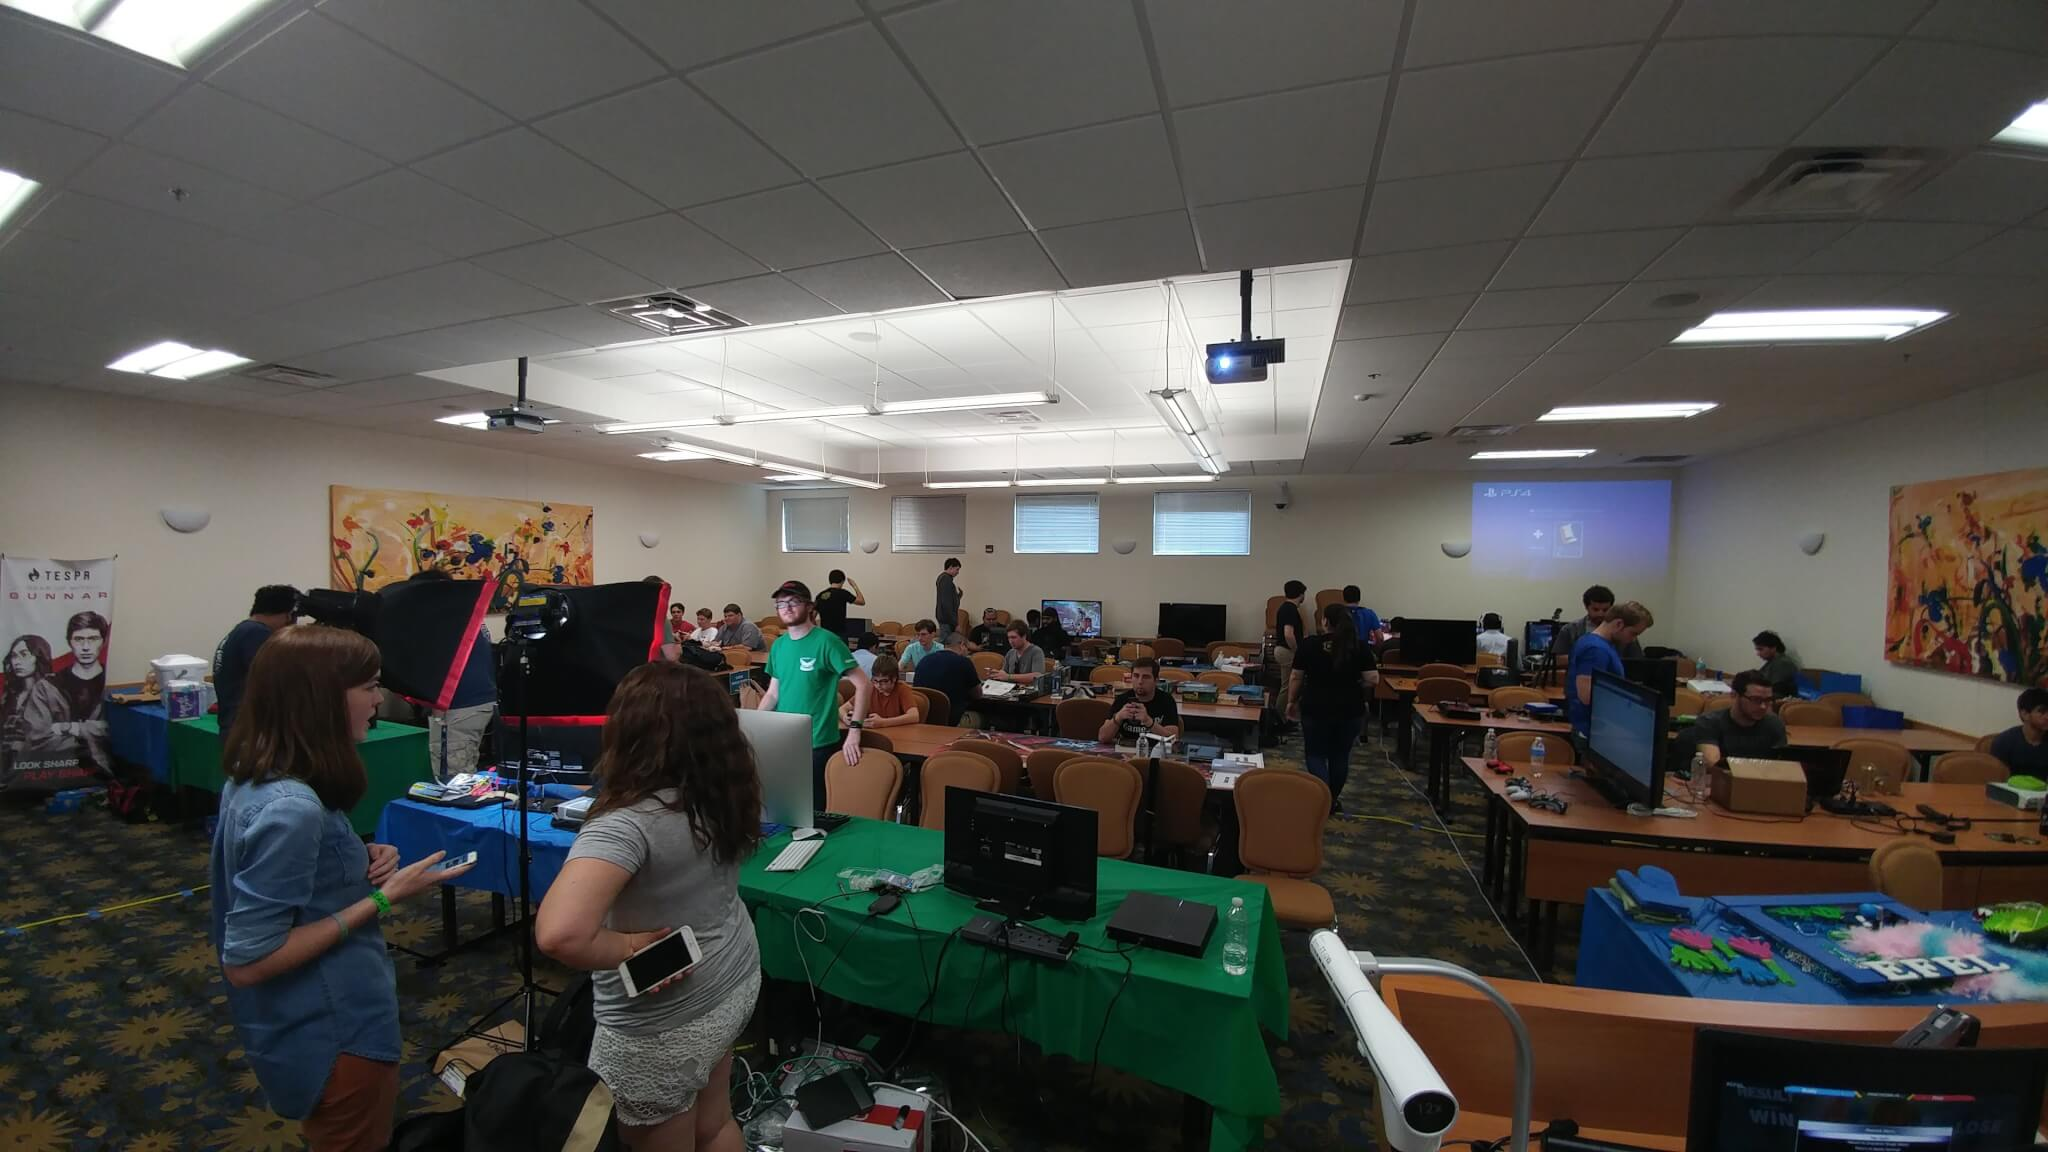 FGCU students host all-day gaming event to raise money for Johns Hopkins Children's Hospital